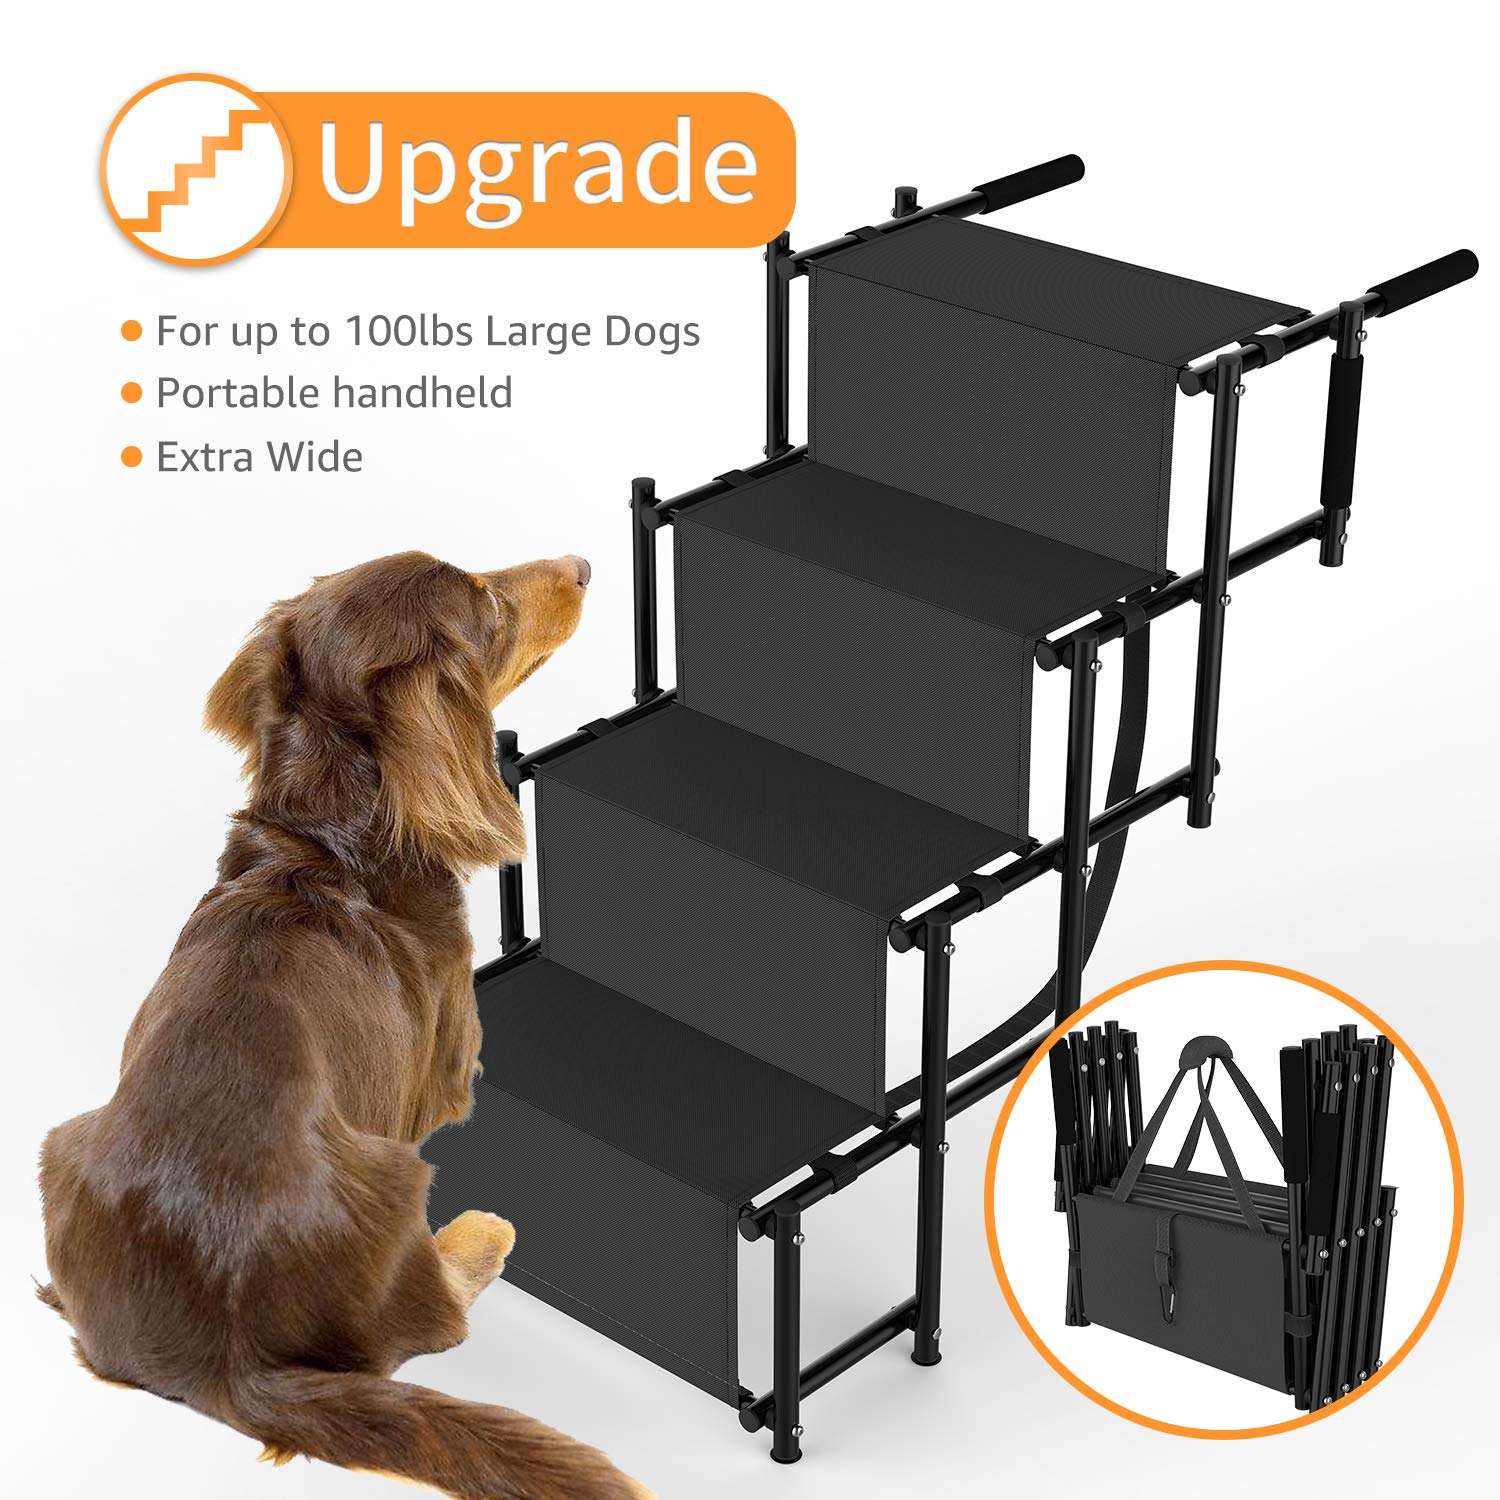 Dog Car Step Stairs Foldable SUKI&SAMI Metal Frame Folding Dog Ramp for Car,Lightweight Portable Large Dog Ladder,for Dogs and Cats,SUVs and Trucks,Couch and Bed,Protect Pets' Joint and Knee by SUKI&SAMI (Image #2)